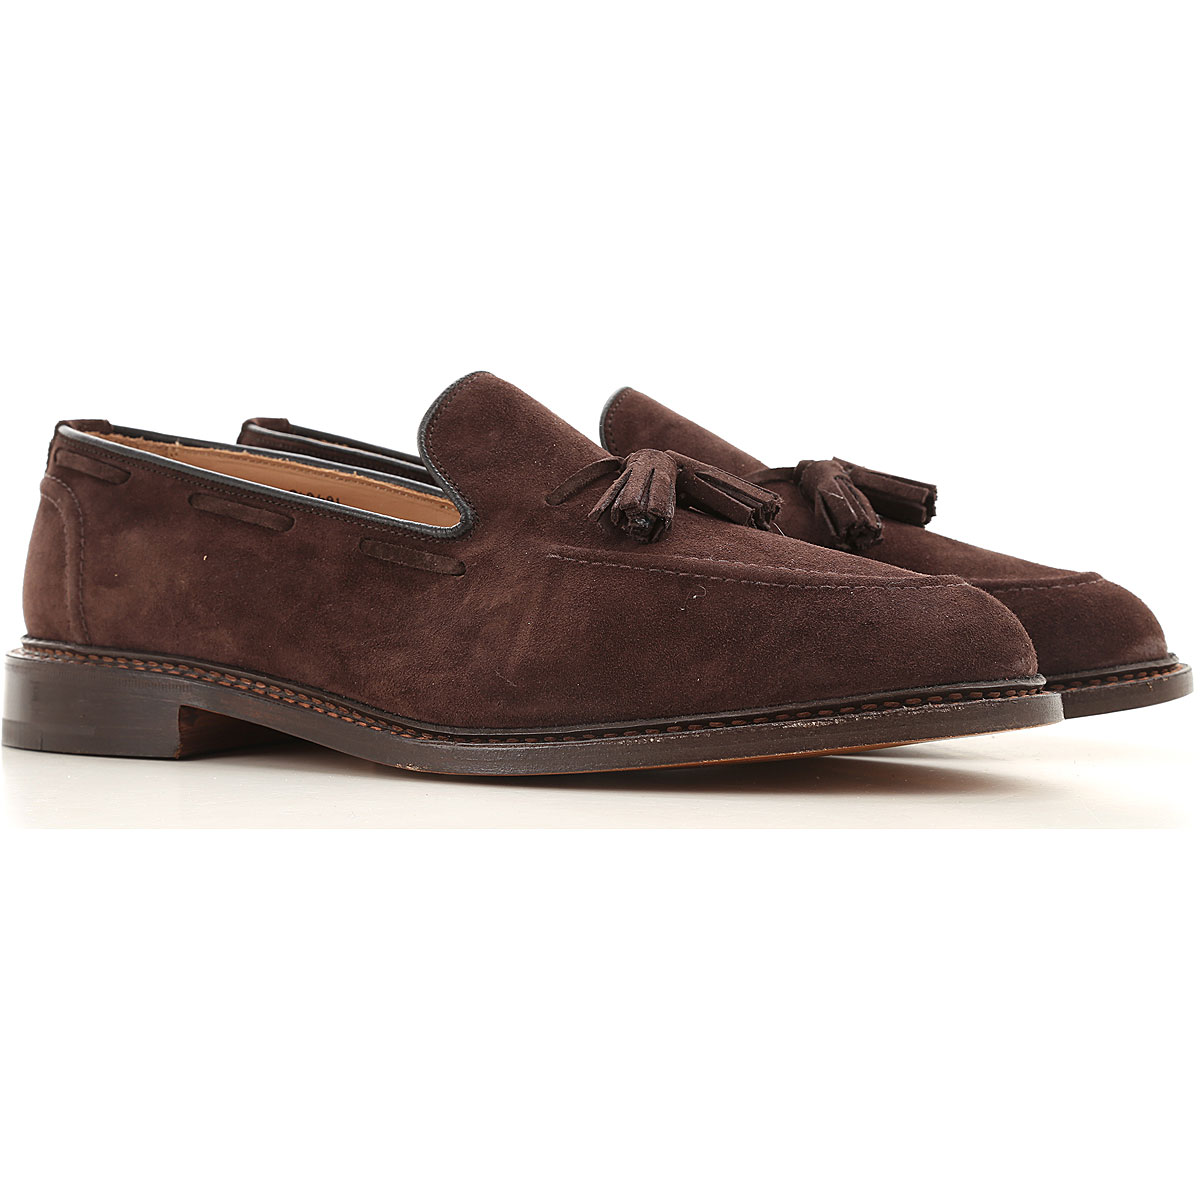 Trickers Loafers for Men On Sale, Coffee, suede, 2019, 10 10.5 11 8 8.5 9 9.5